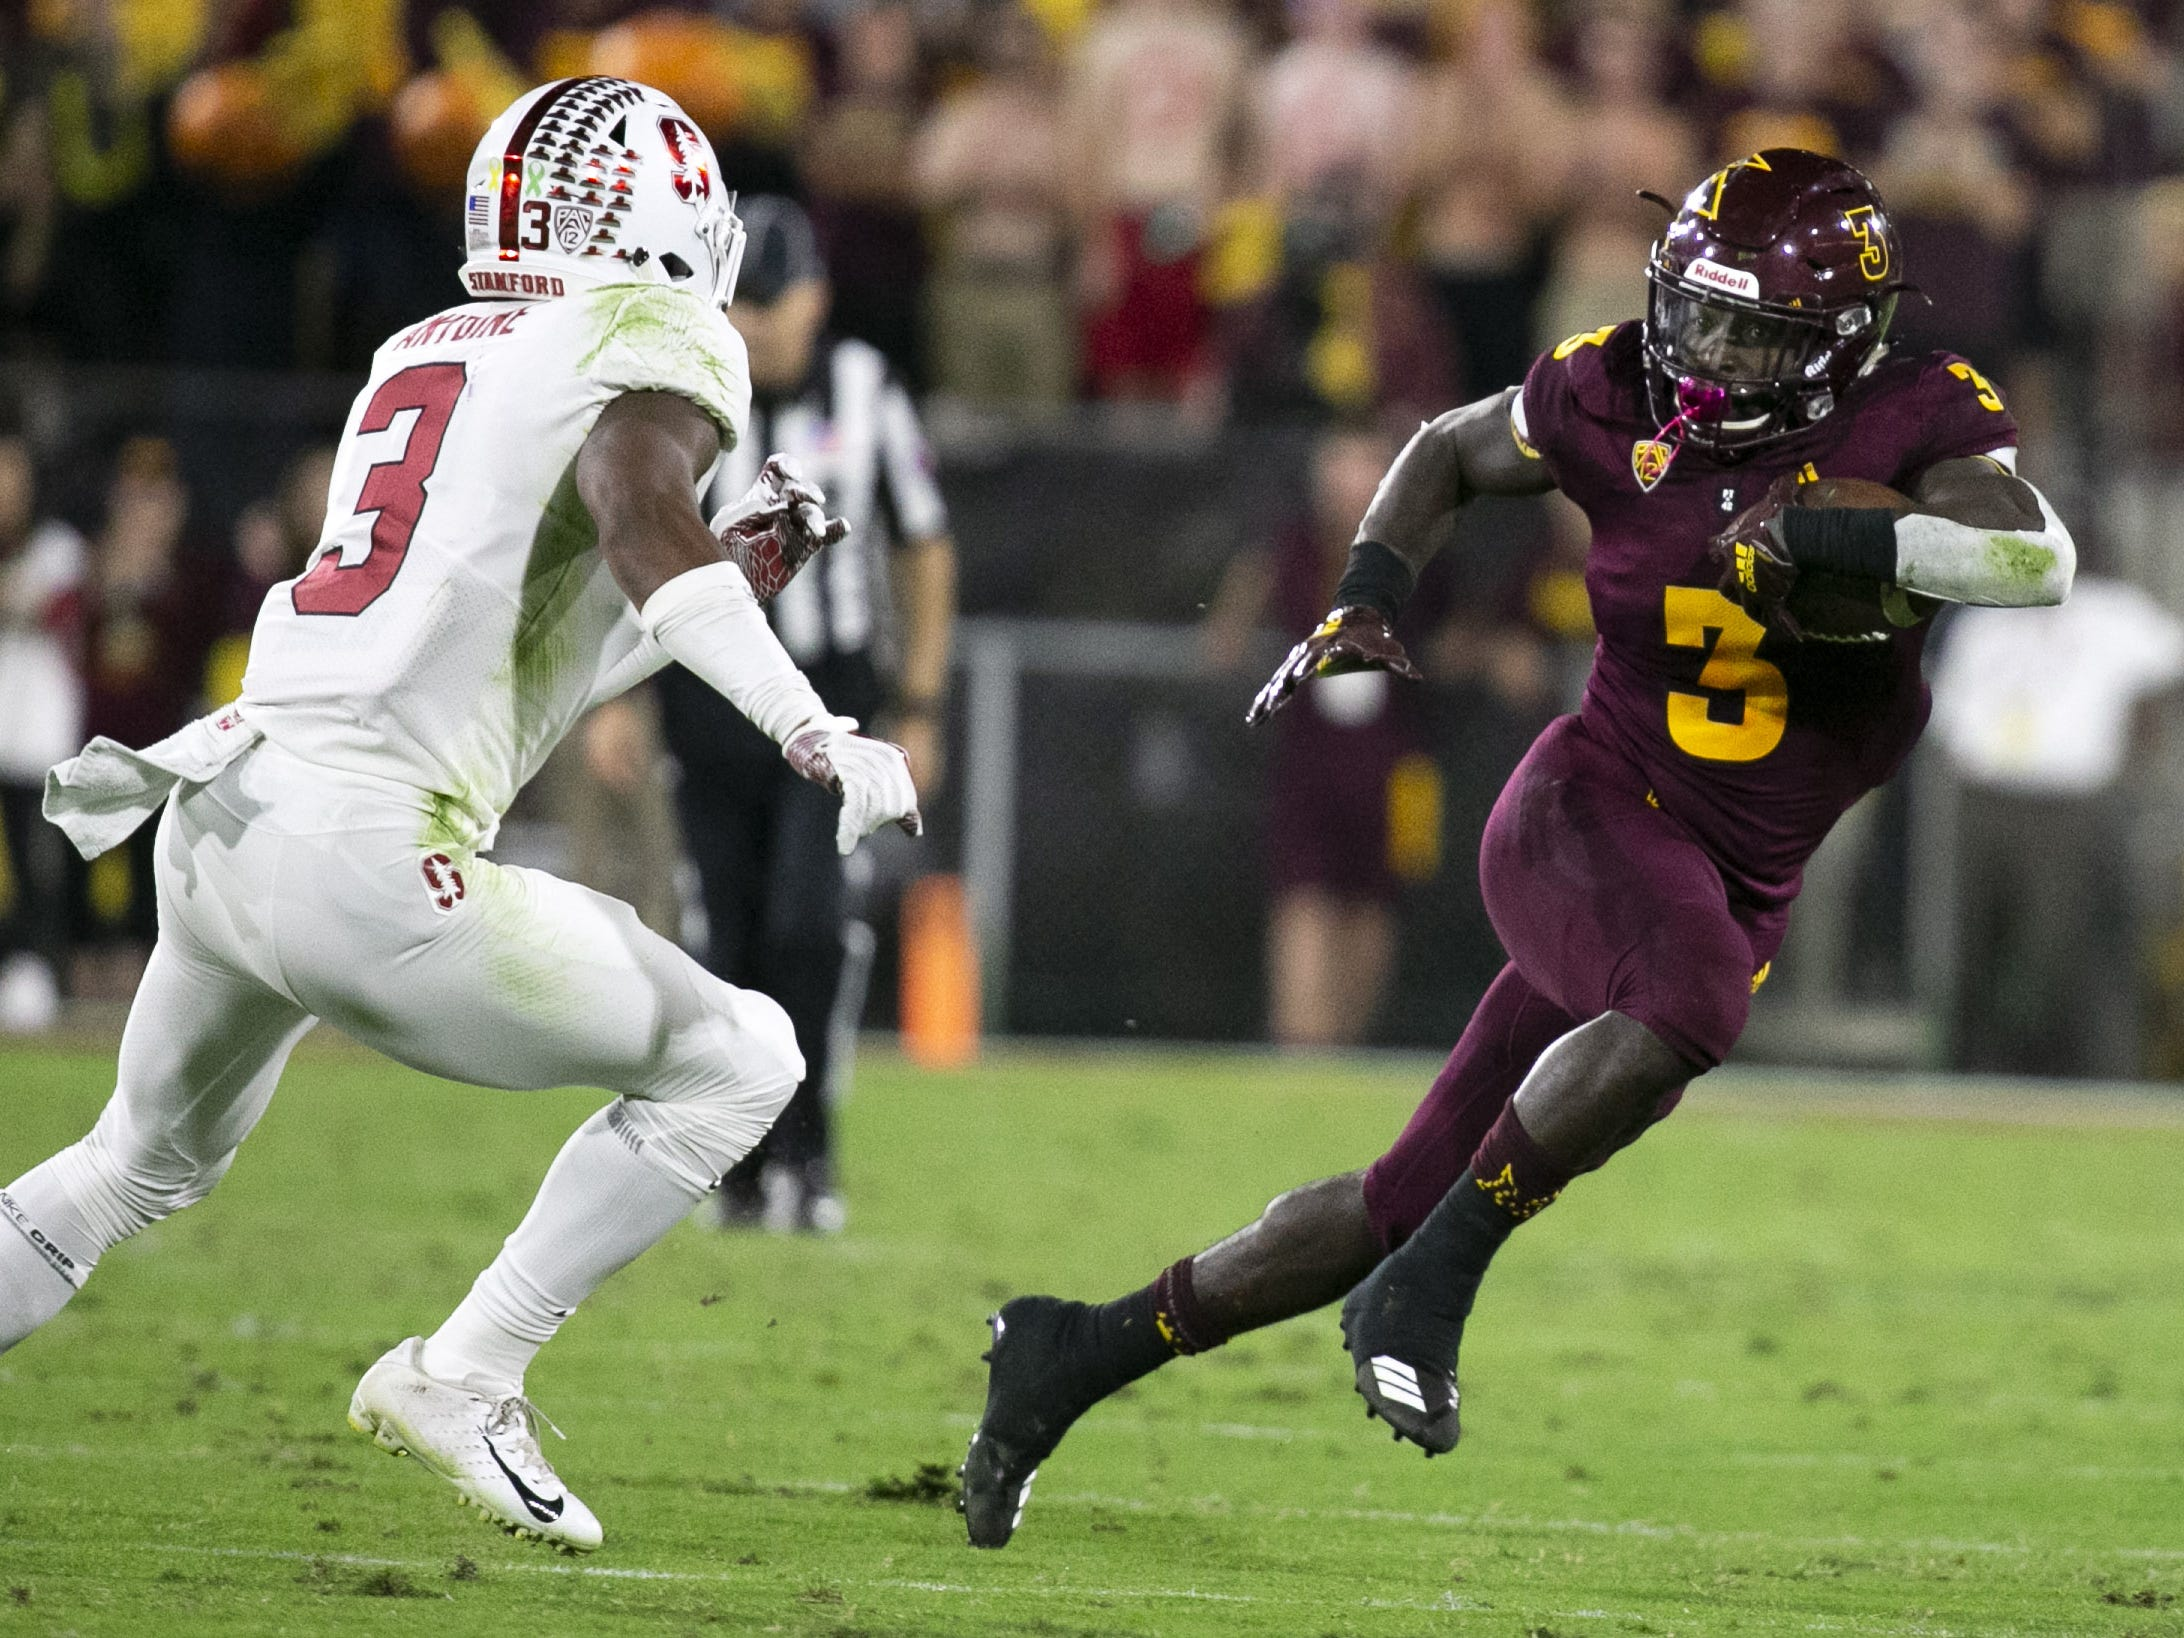 ASU running back Eno Benjamin carries the ball against Stanford safety Malik Antoine during the first half of the Pac-12 college football game at Sun Devil Stadium in Tempe on October 18, 2018.